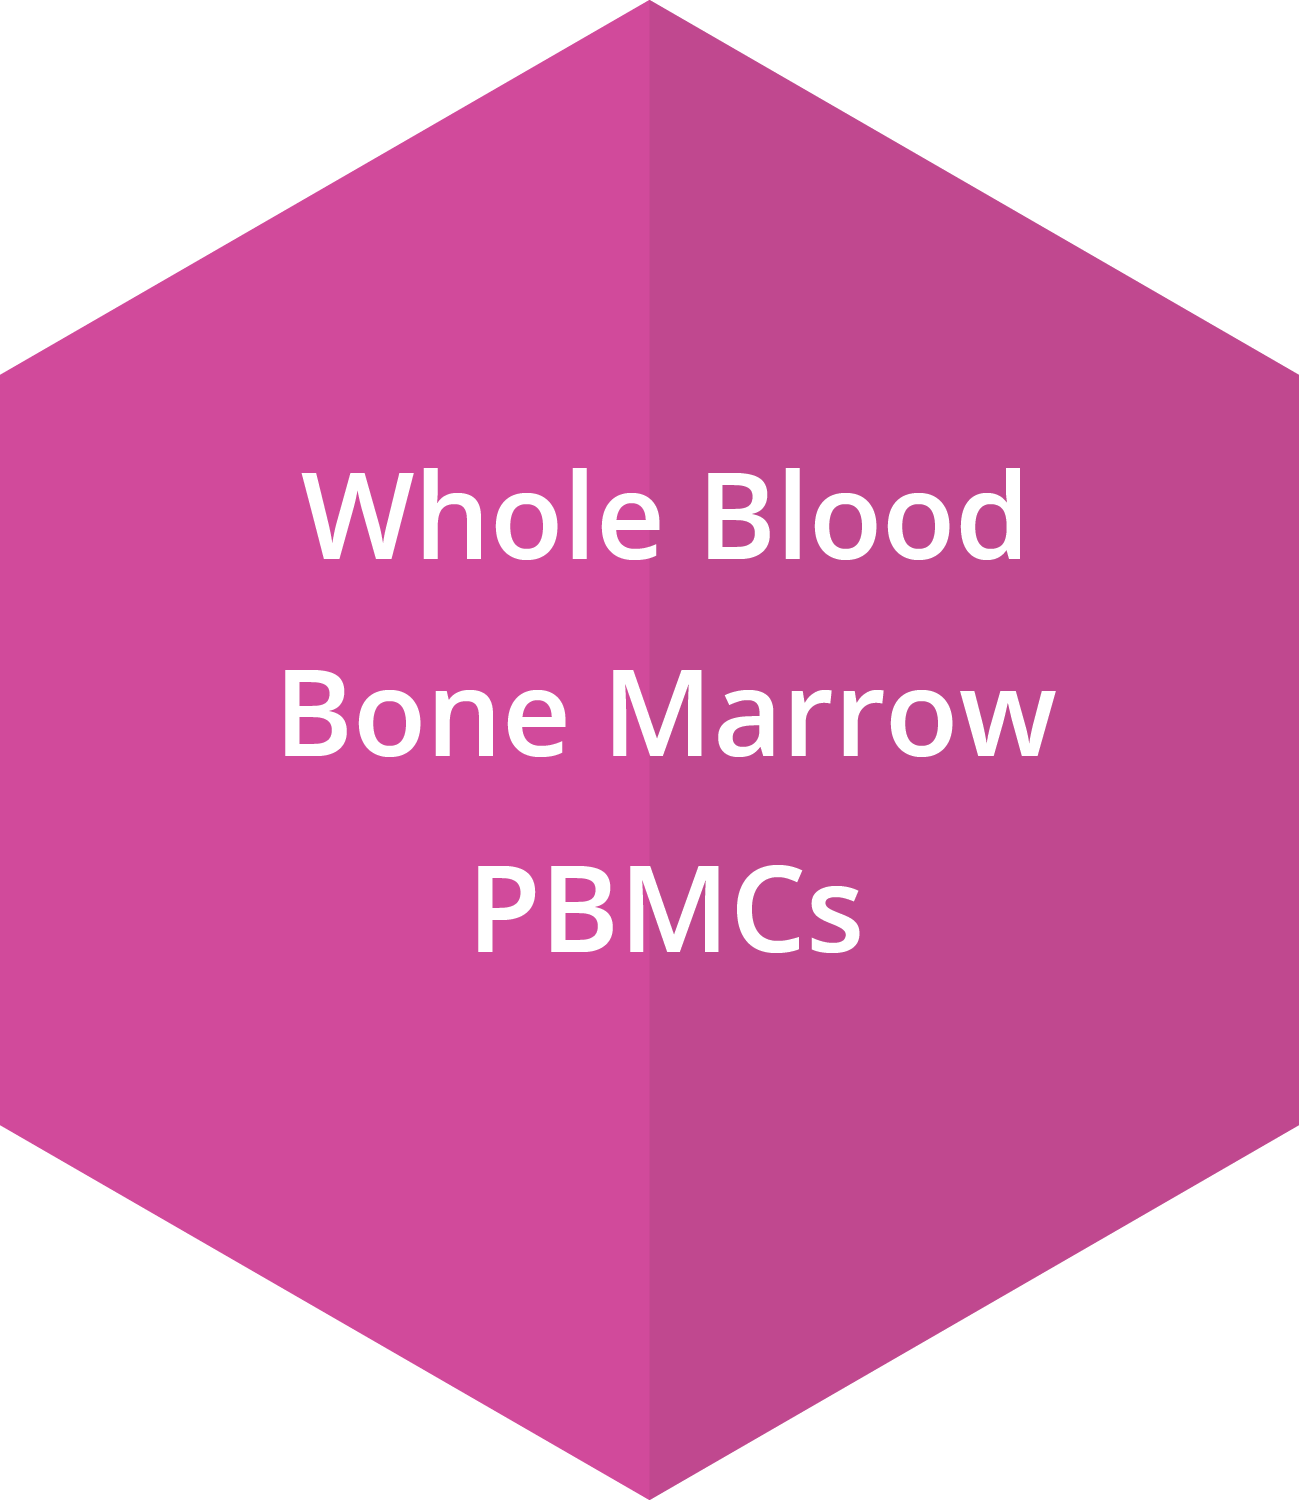 Whole Blood, Bone Marrow, PBMCs